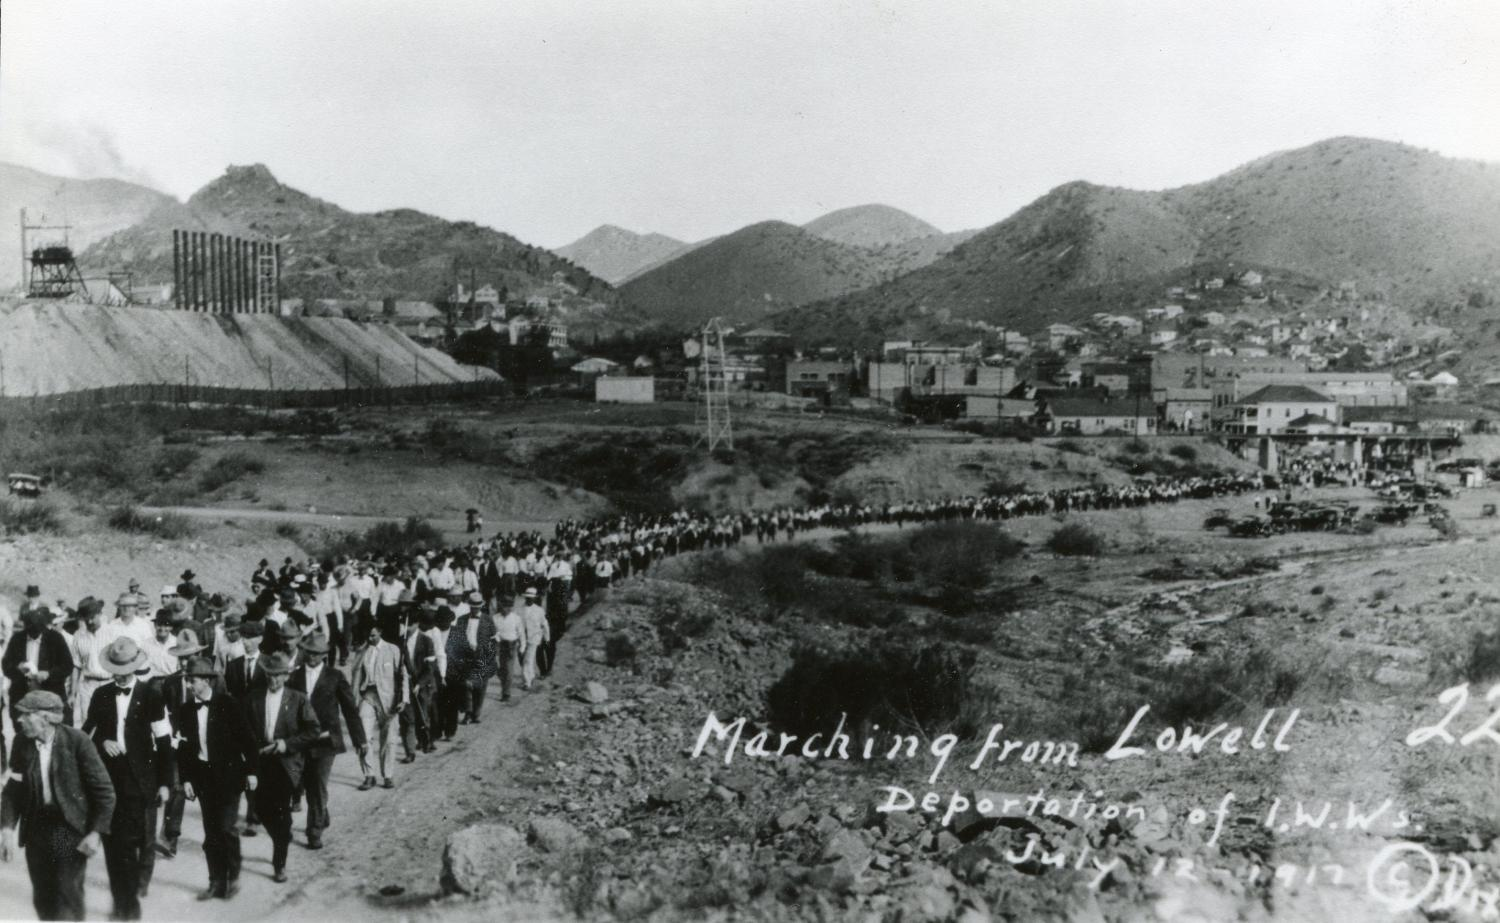 (Photo courtesy of the Bisbee Mining & Historical Museum, a Smithsonian Affiliate)